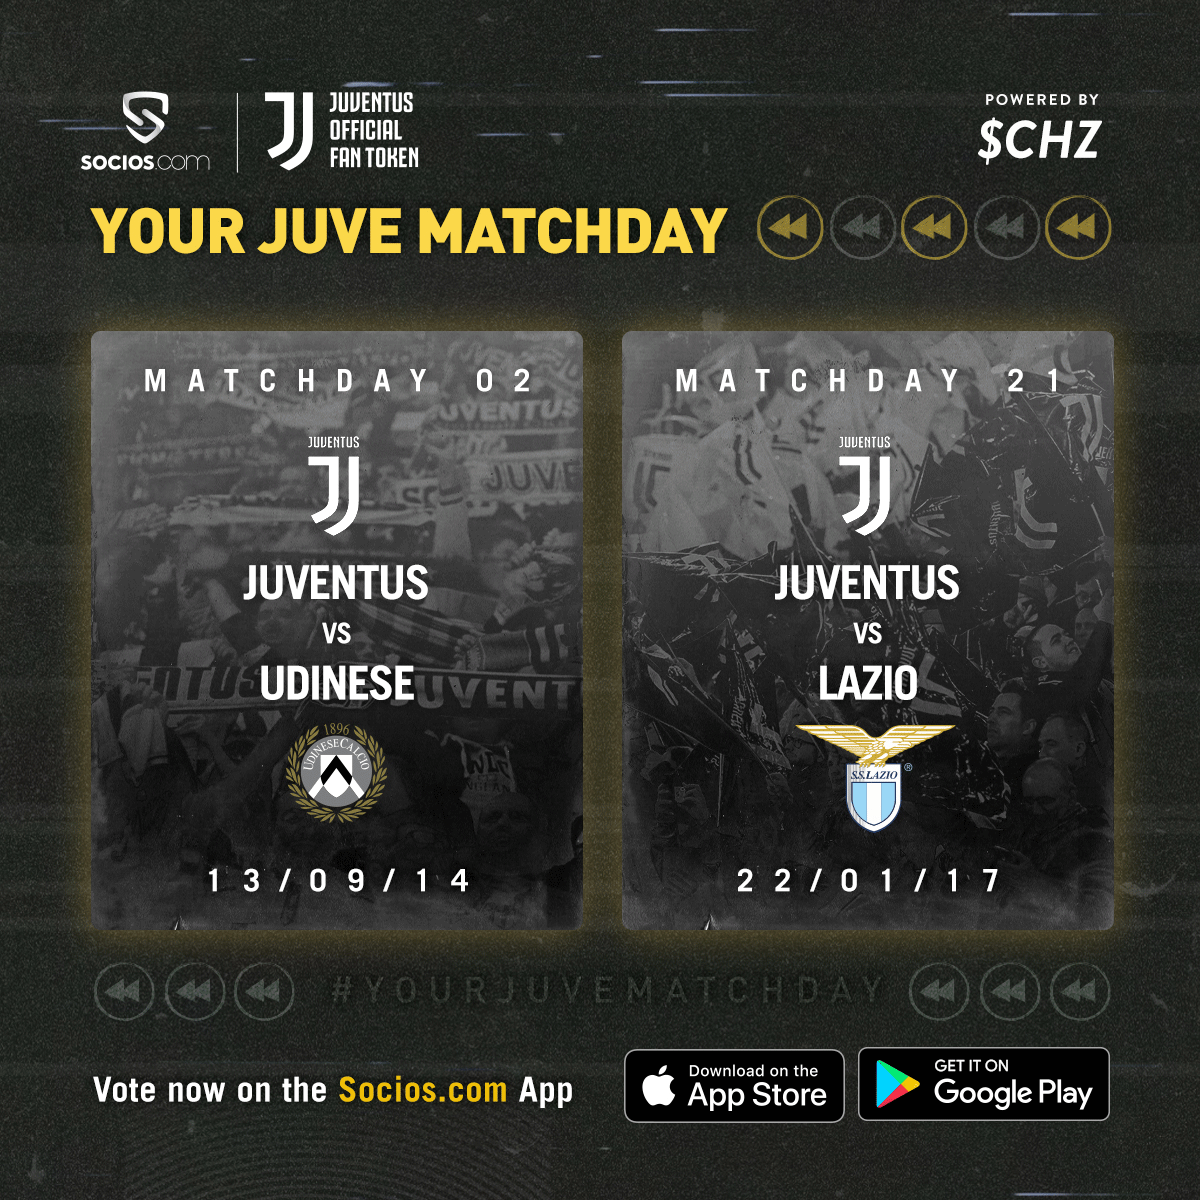 😁 All set for a great midweek #YourJuveMatchday!  🤔 Will it be #JuveUdinese or #JuveLazio?  🗳 Vote now on the @socios app ➡️ https://t.co/eftxzosUK7 https://t.co/xZmxKzVcPf